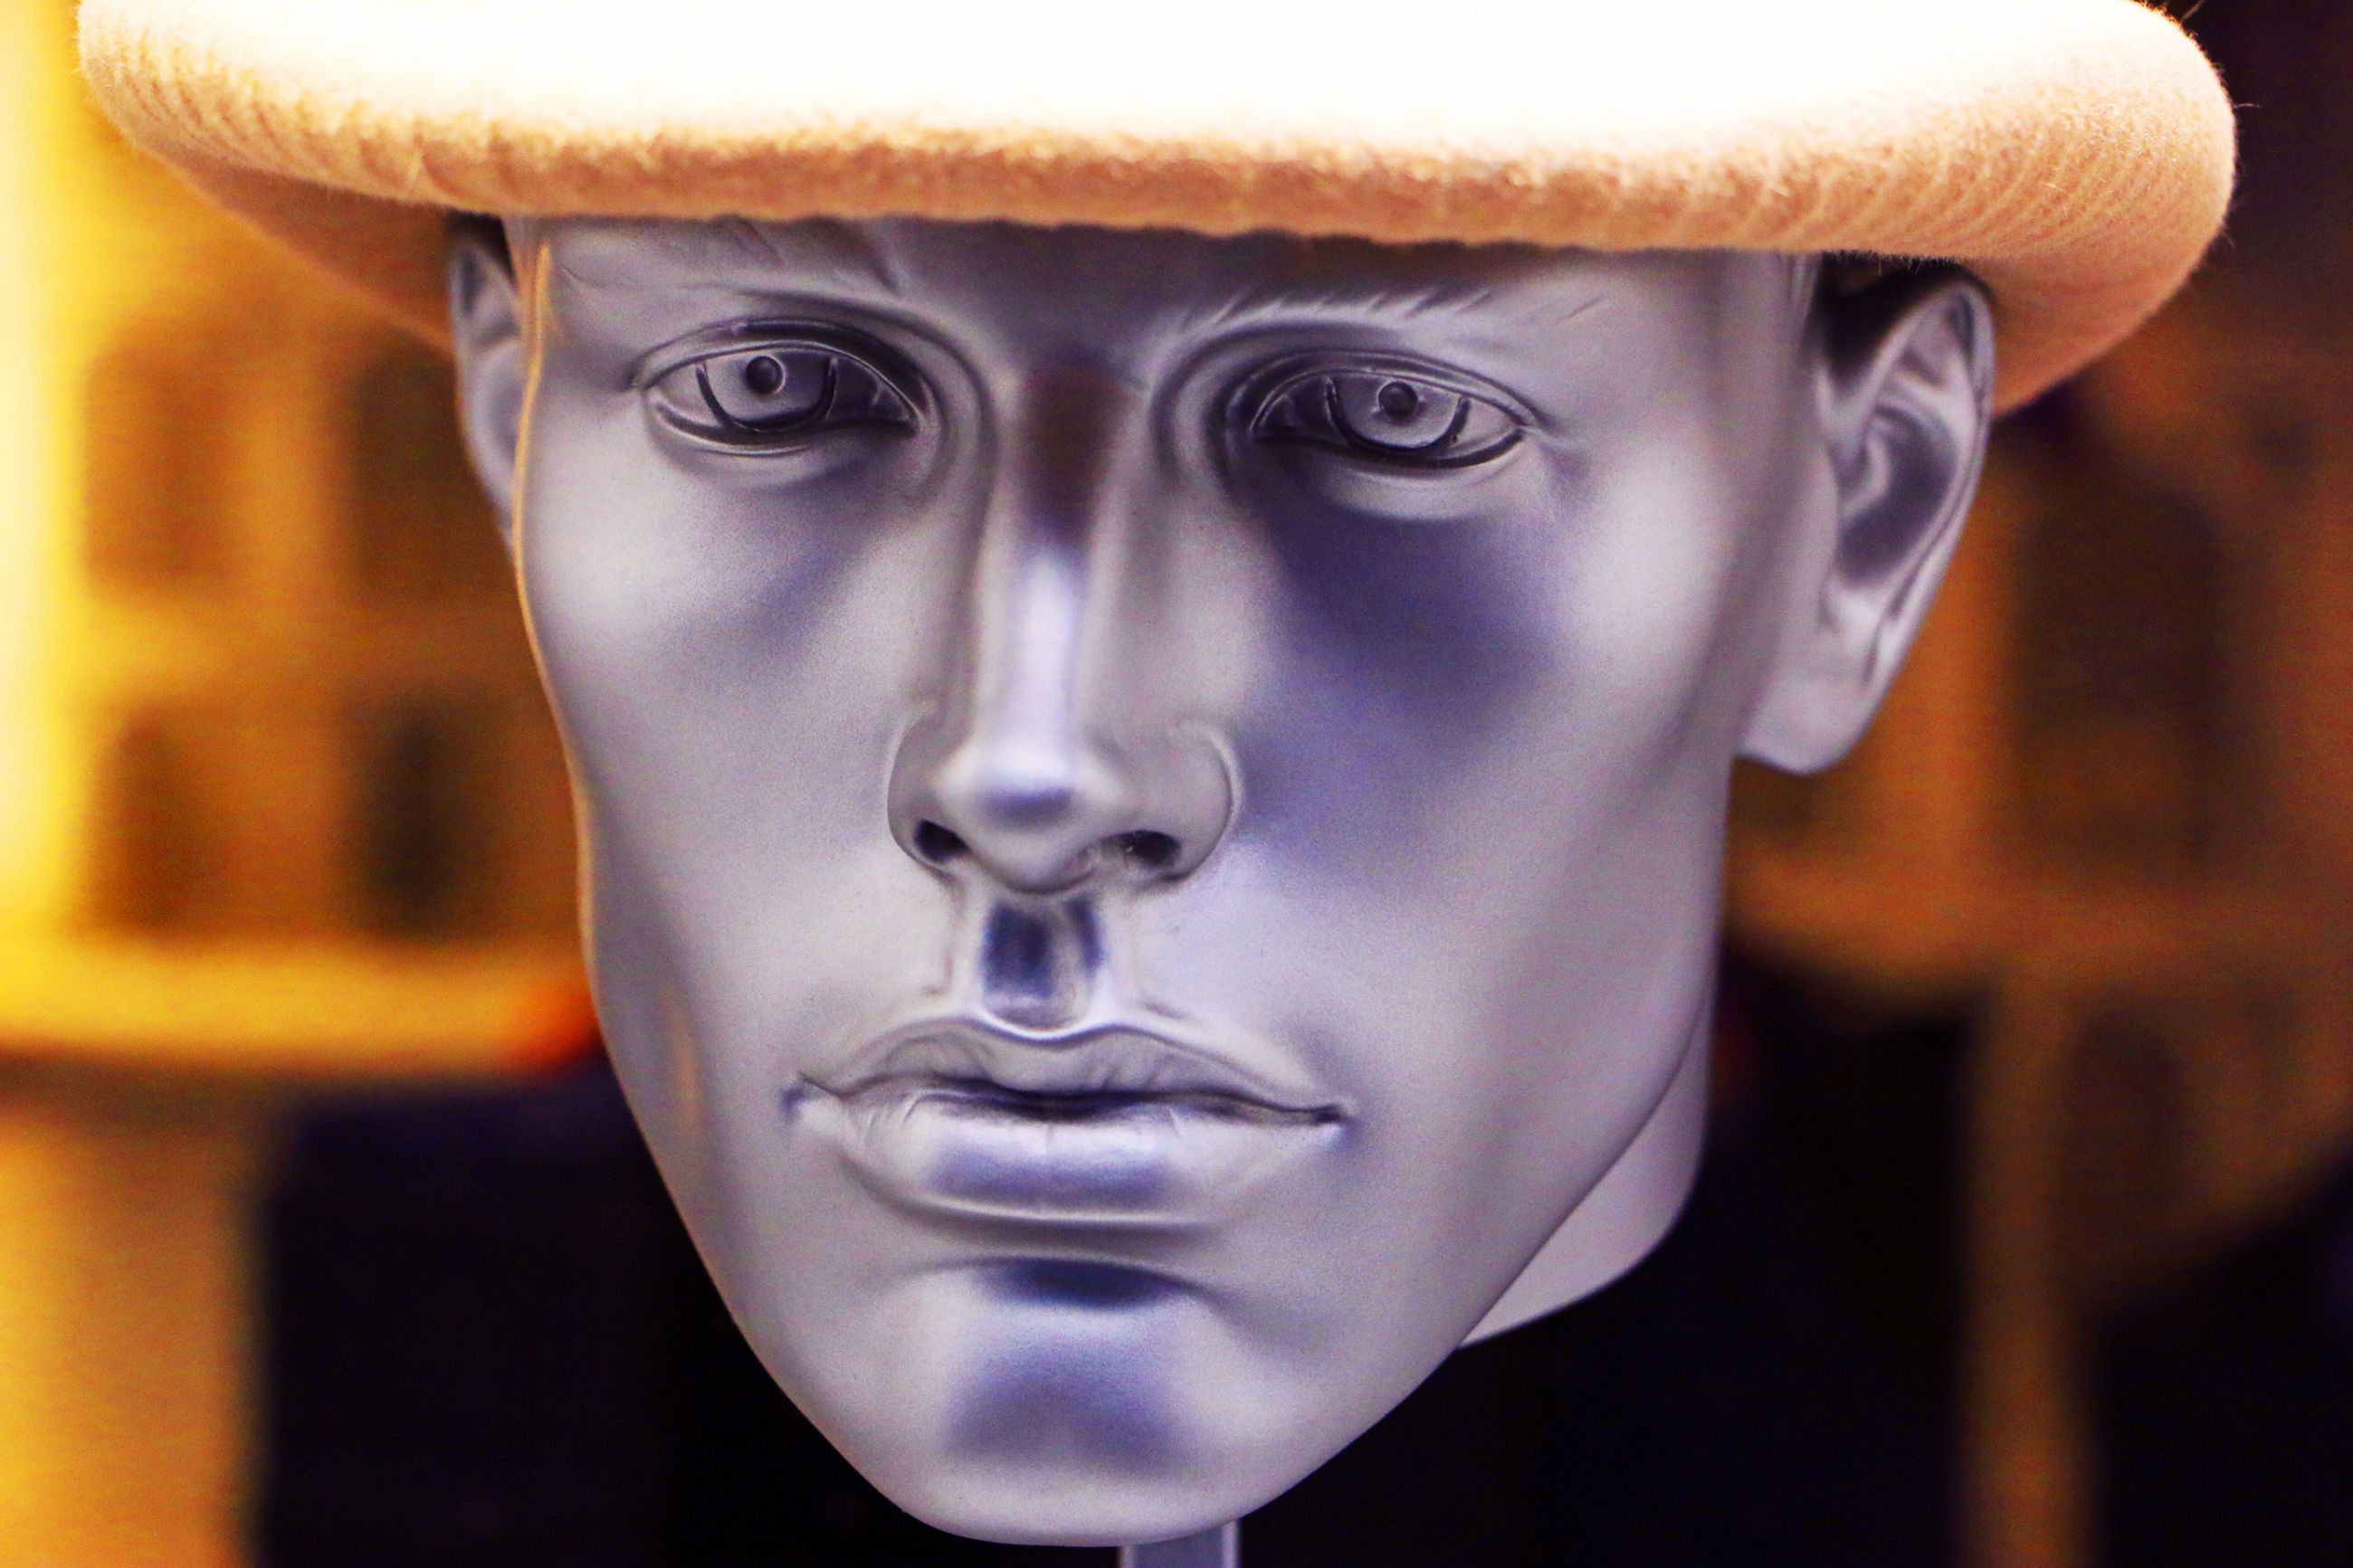 CLOSE-UP PORTRAIT OF STATUE AGAINST BLURRED BACKGROUND